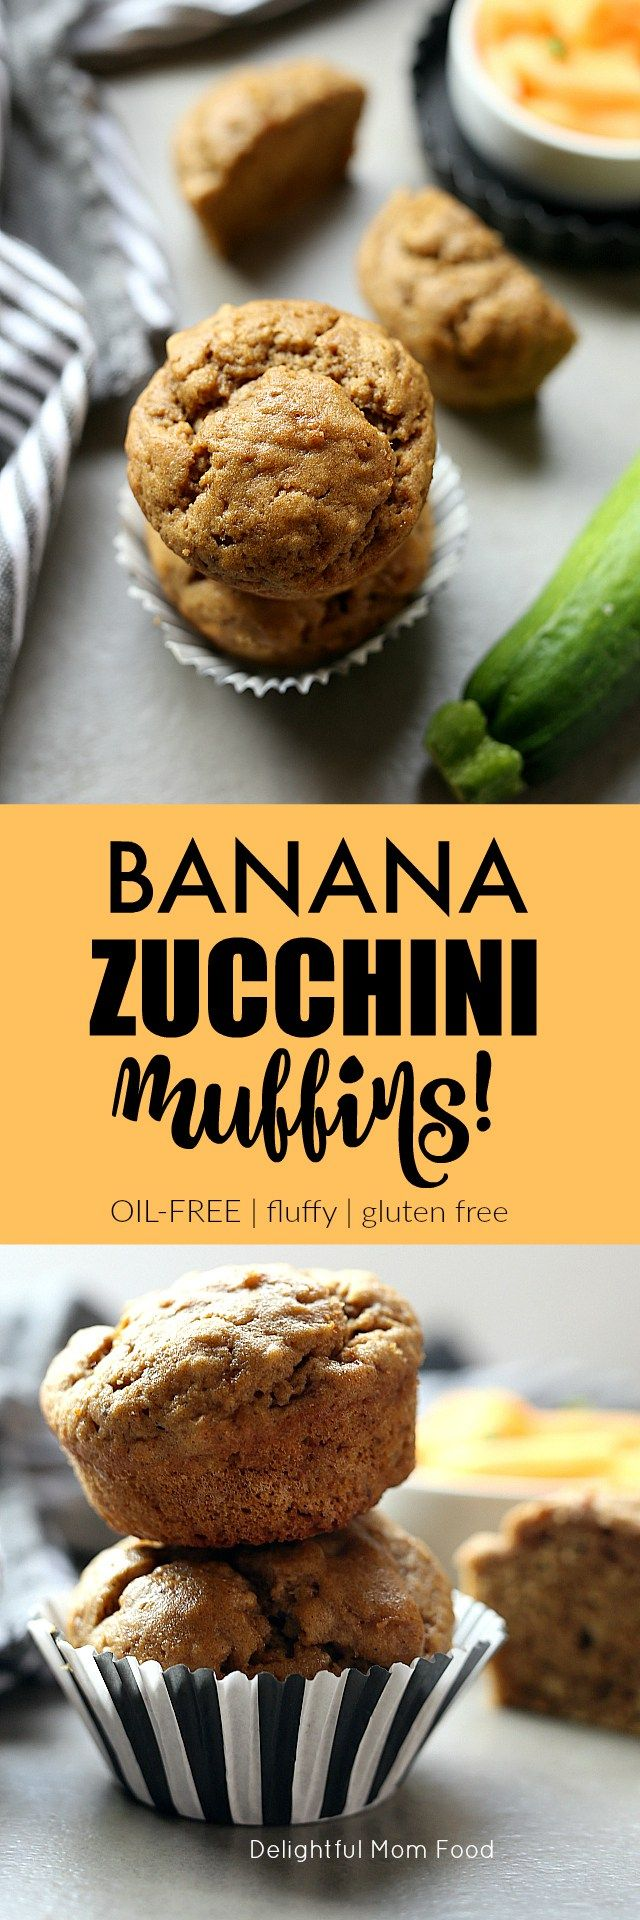 Best and healthy banana zucchini muffins! Gluten free, nut free, dairy free and no need to grate the zucchini. Just throw wet ingredients in the blender!